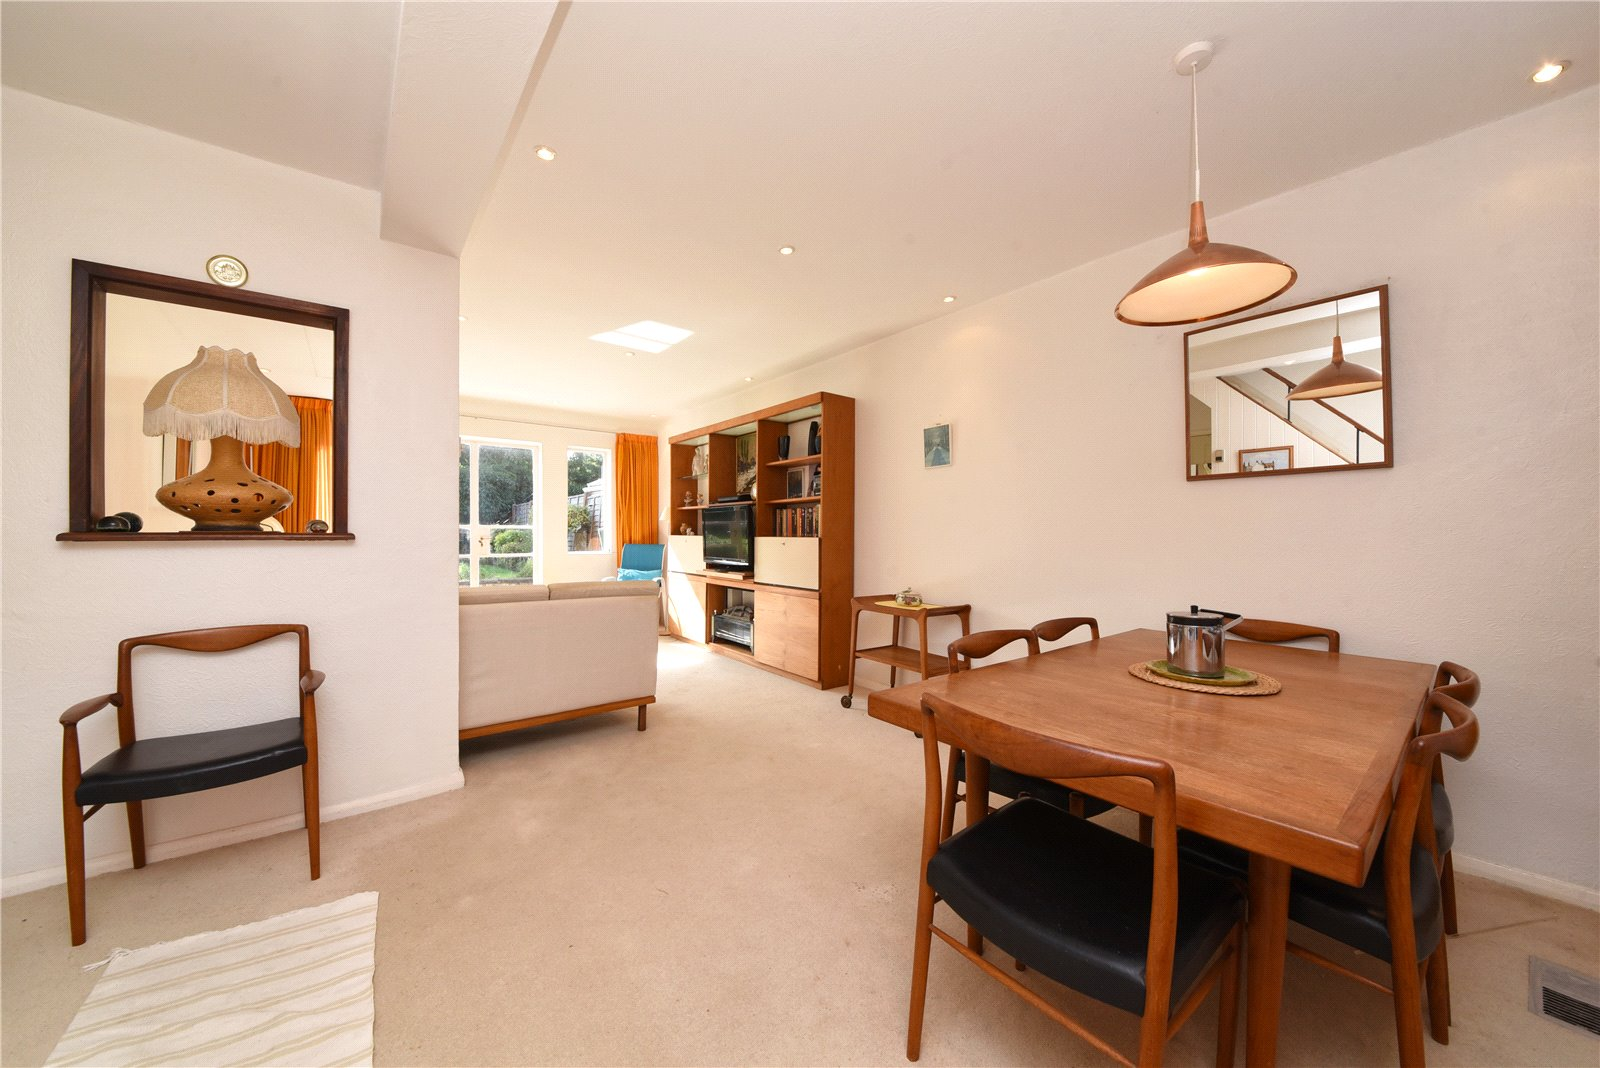 3 bed house for sale in West Finchley, N3 1PB  - Property Image 4